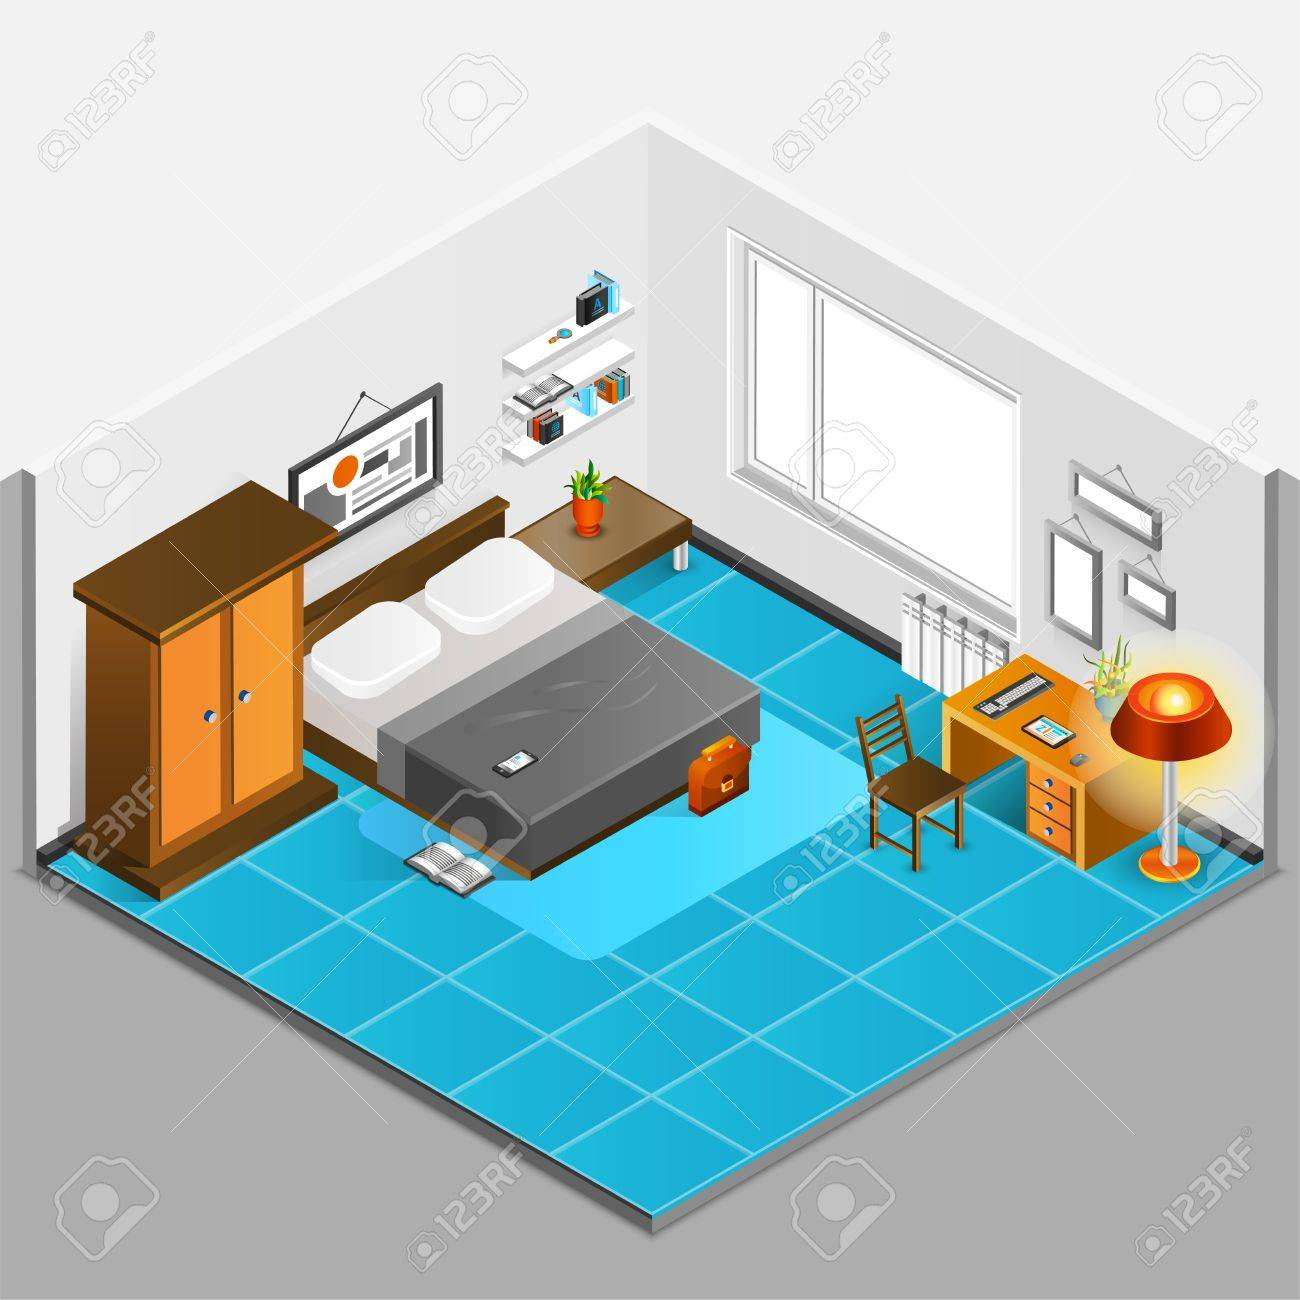 Home Interior Isometric Concept With Bedroom Design And Furniture Royalty Free Cliparts Vectors And Stock Illustration Image 54733396